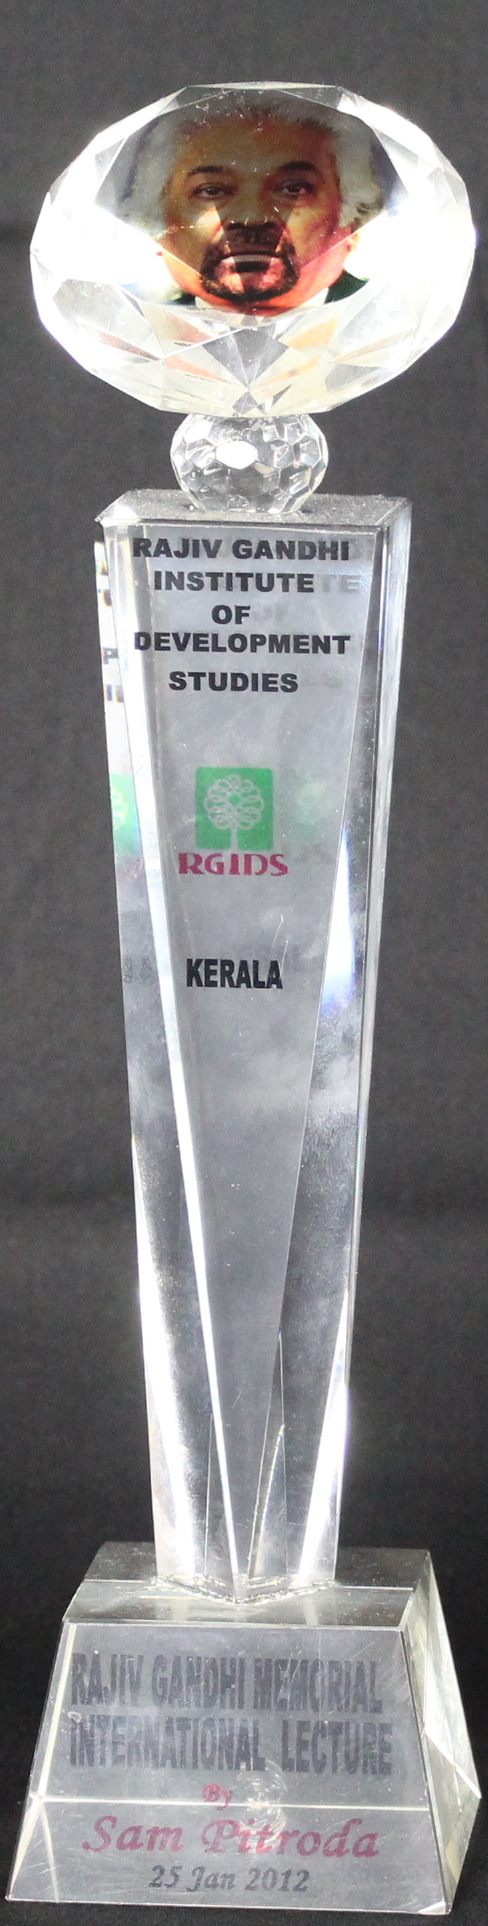 Award of Appreciation for Rajiv Gandhi Memorial International Lecture, Rajiv Gandhi Institute of Development Studies, Kerala, 2012